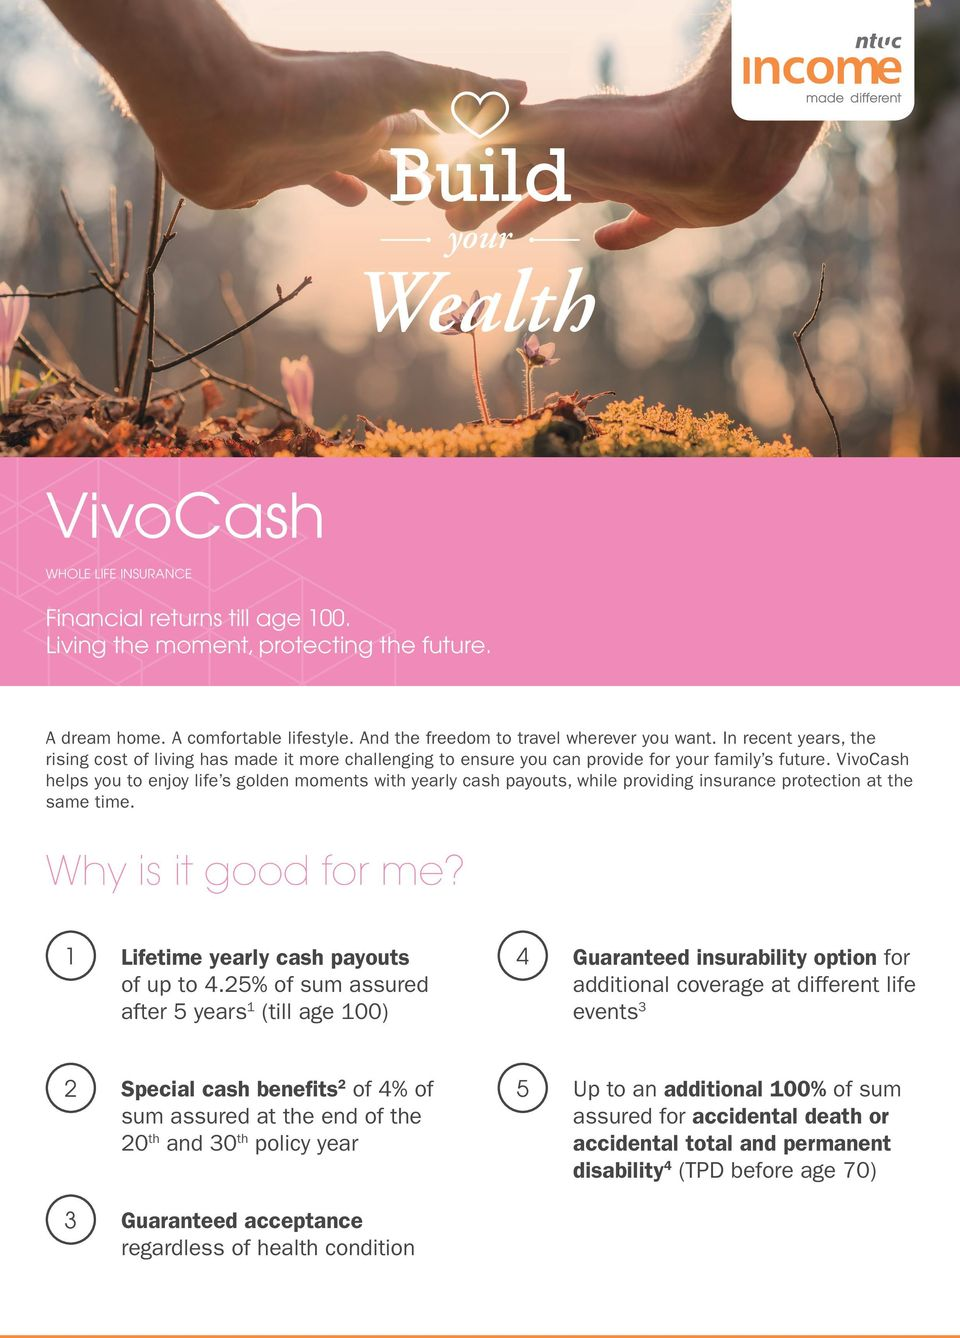 VivoCash helps you to enjoy life s golden moments with yearly cash payouts, while providing insurance protection at the same time. Why is it good for me? 1 Lifetime yearly cash payouts 4 of up to 4.